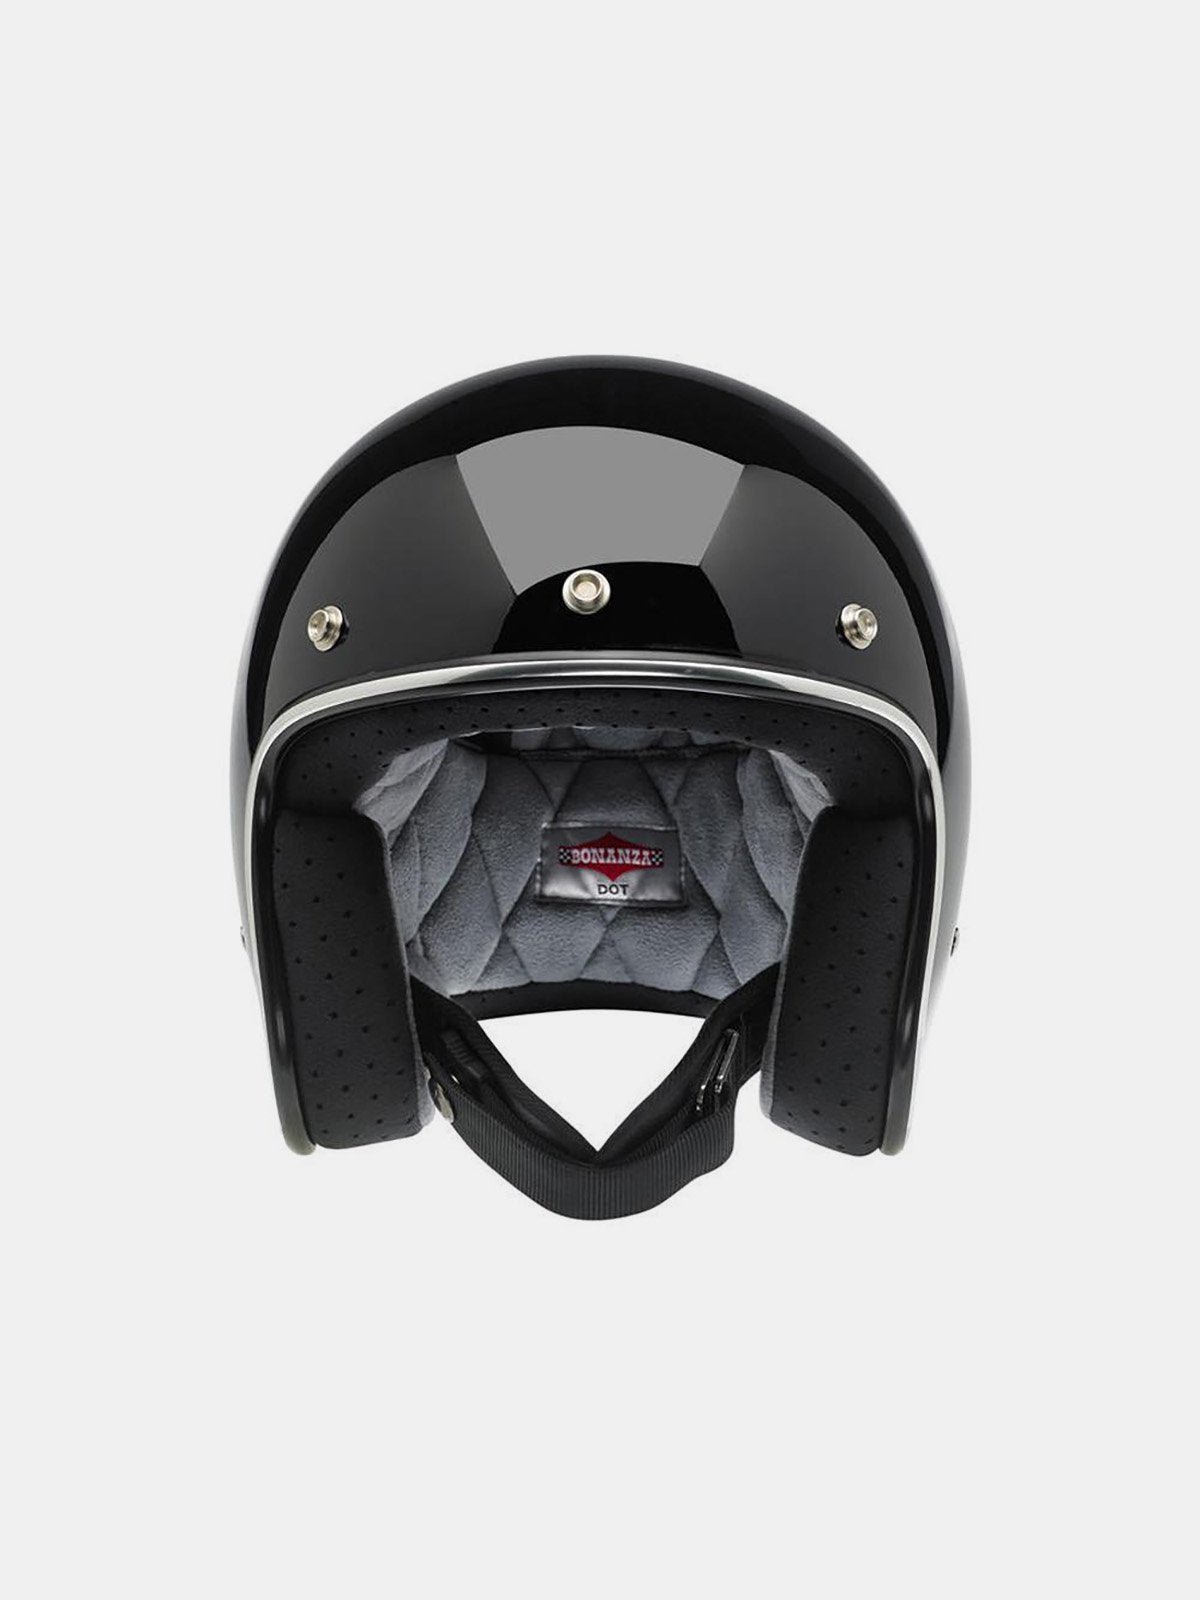 Riding Gear - Biltwell Bonanza Helmet - Grey/Black